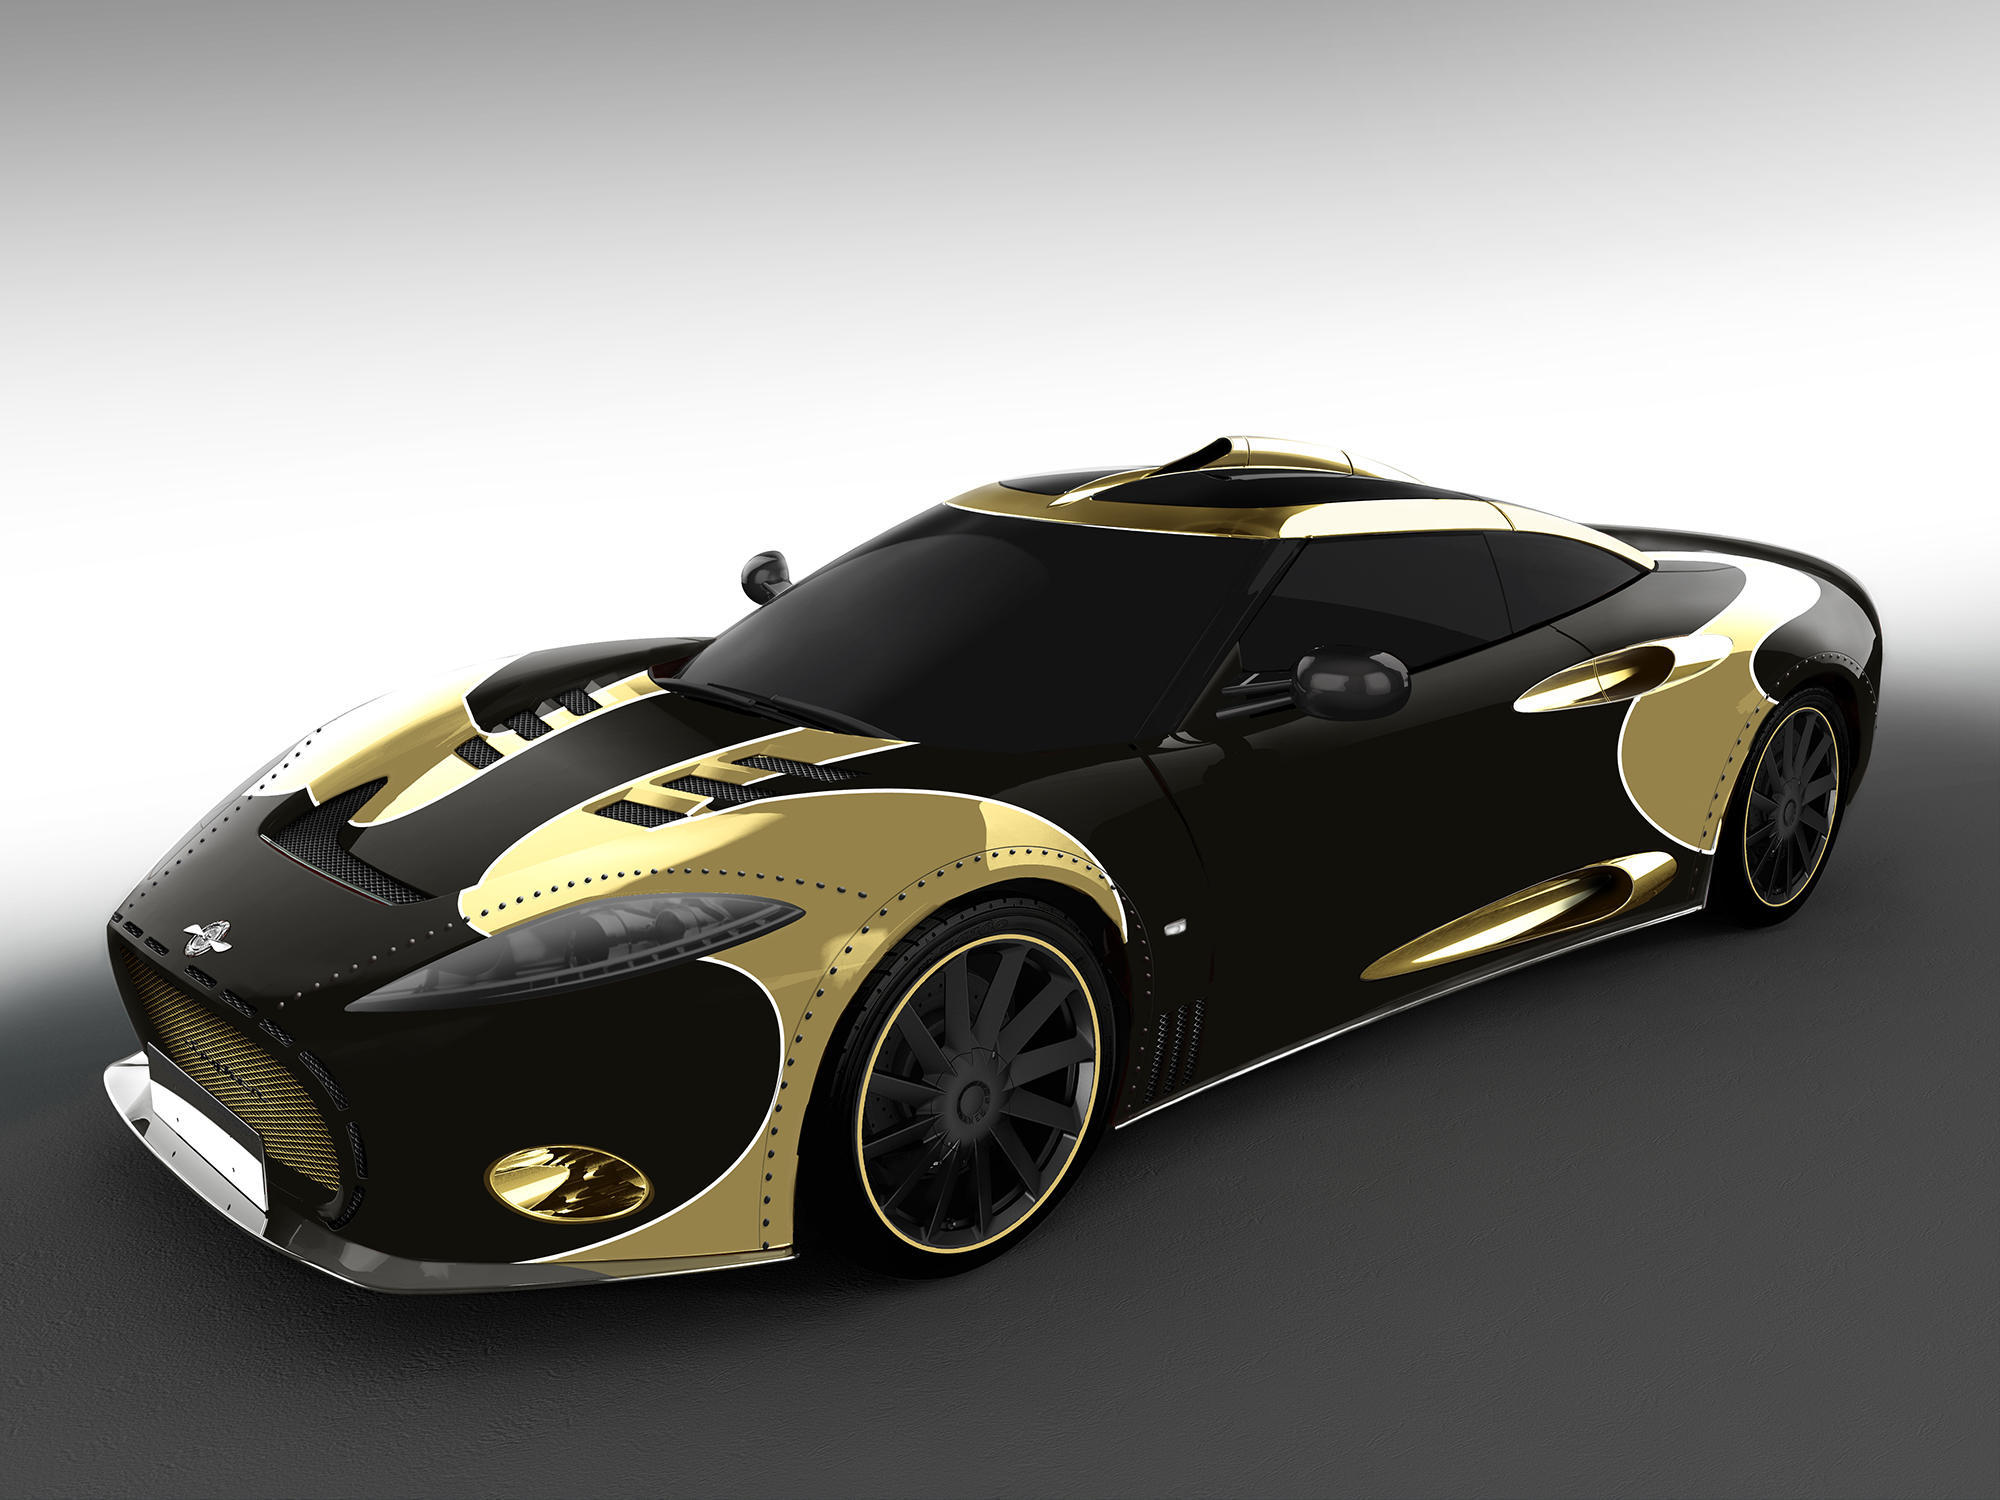 Spyker C8 Aileron LM85 special edition